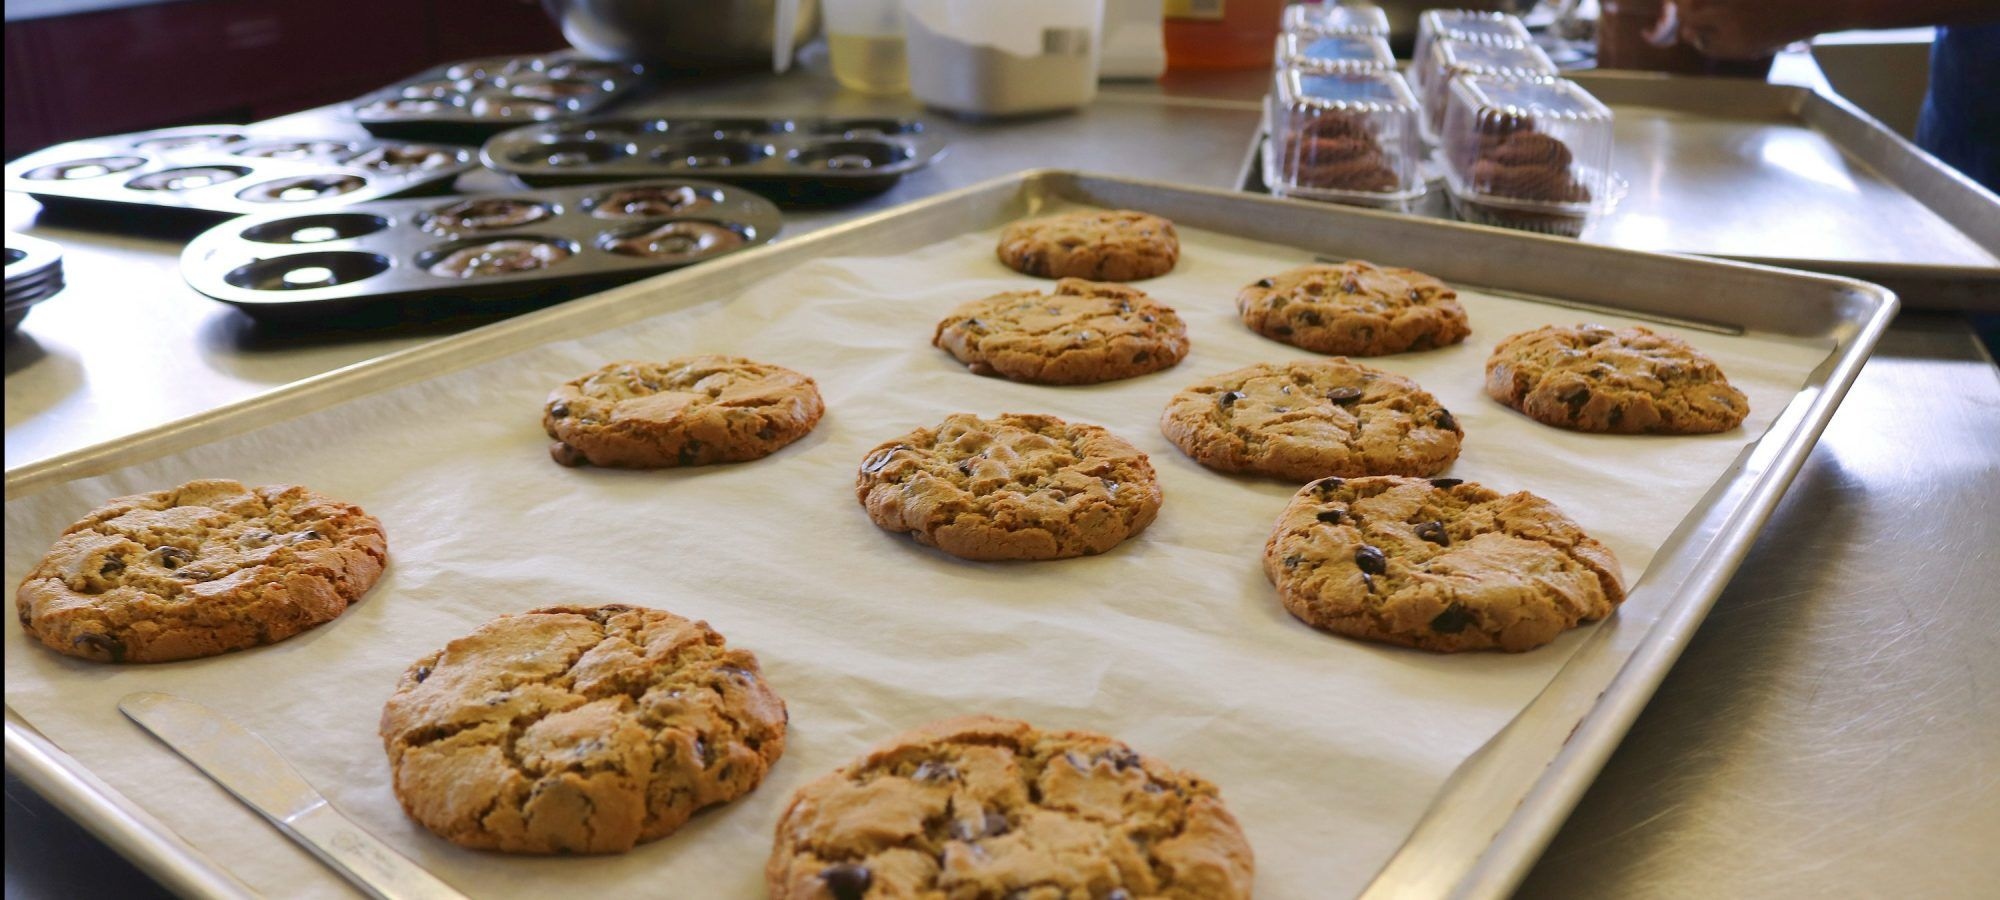 Fresh Gluten Free Chocolate Chip Cookies | Third Coast Bakery